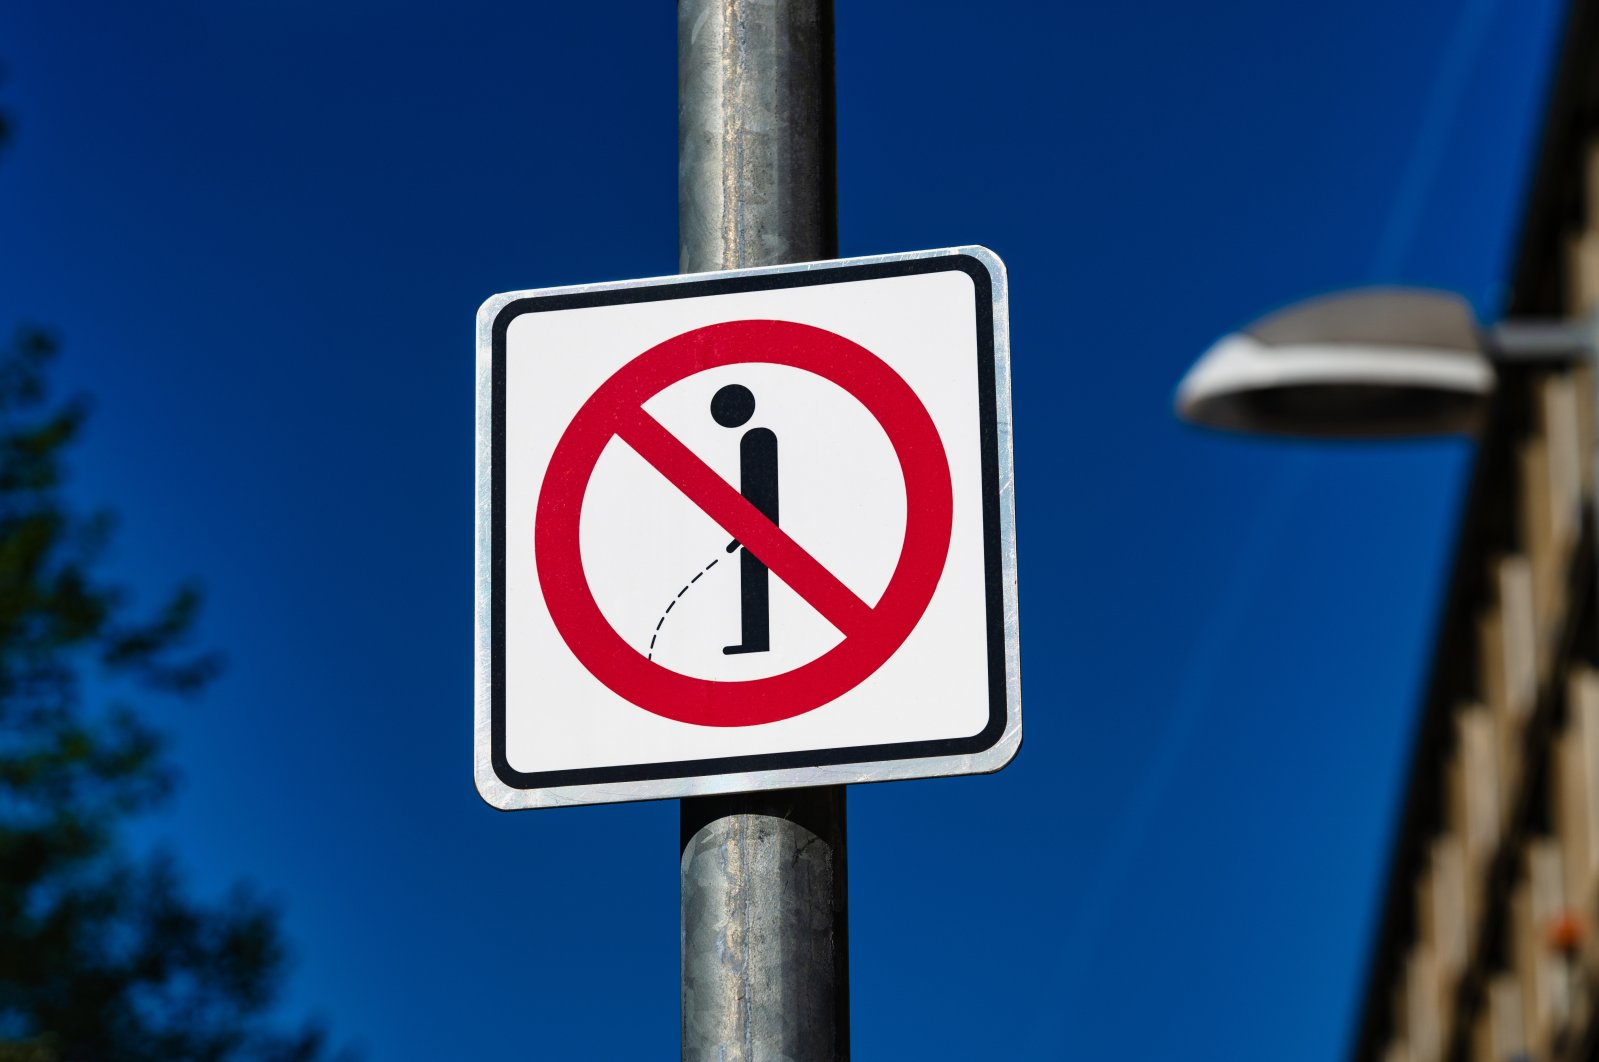 A sign reminding passersby to not pee in public.